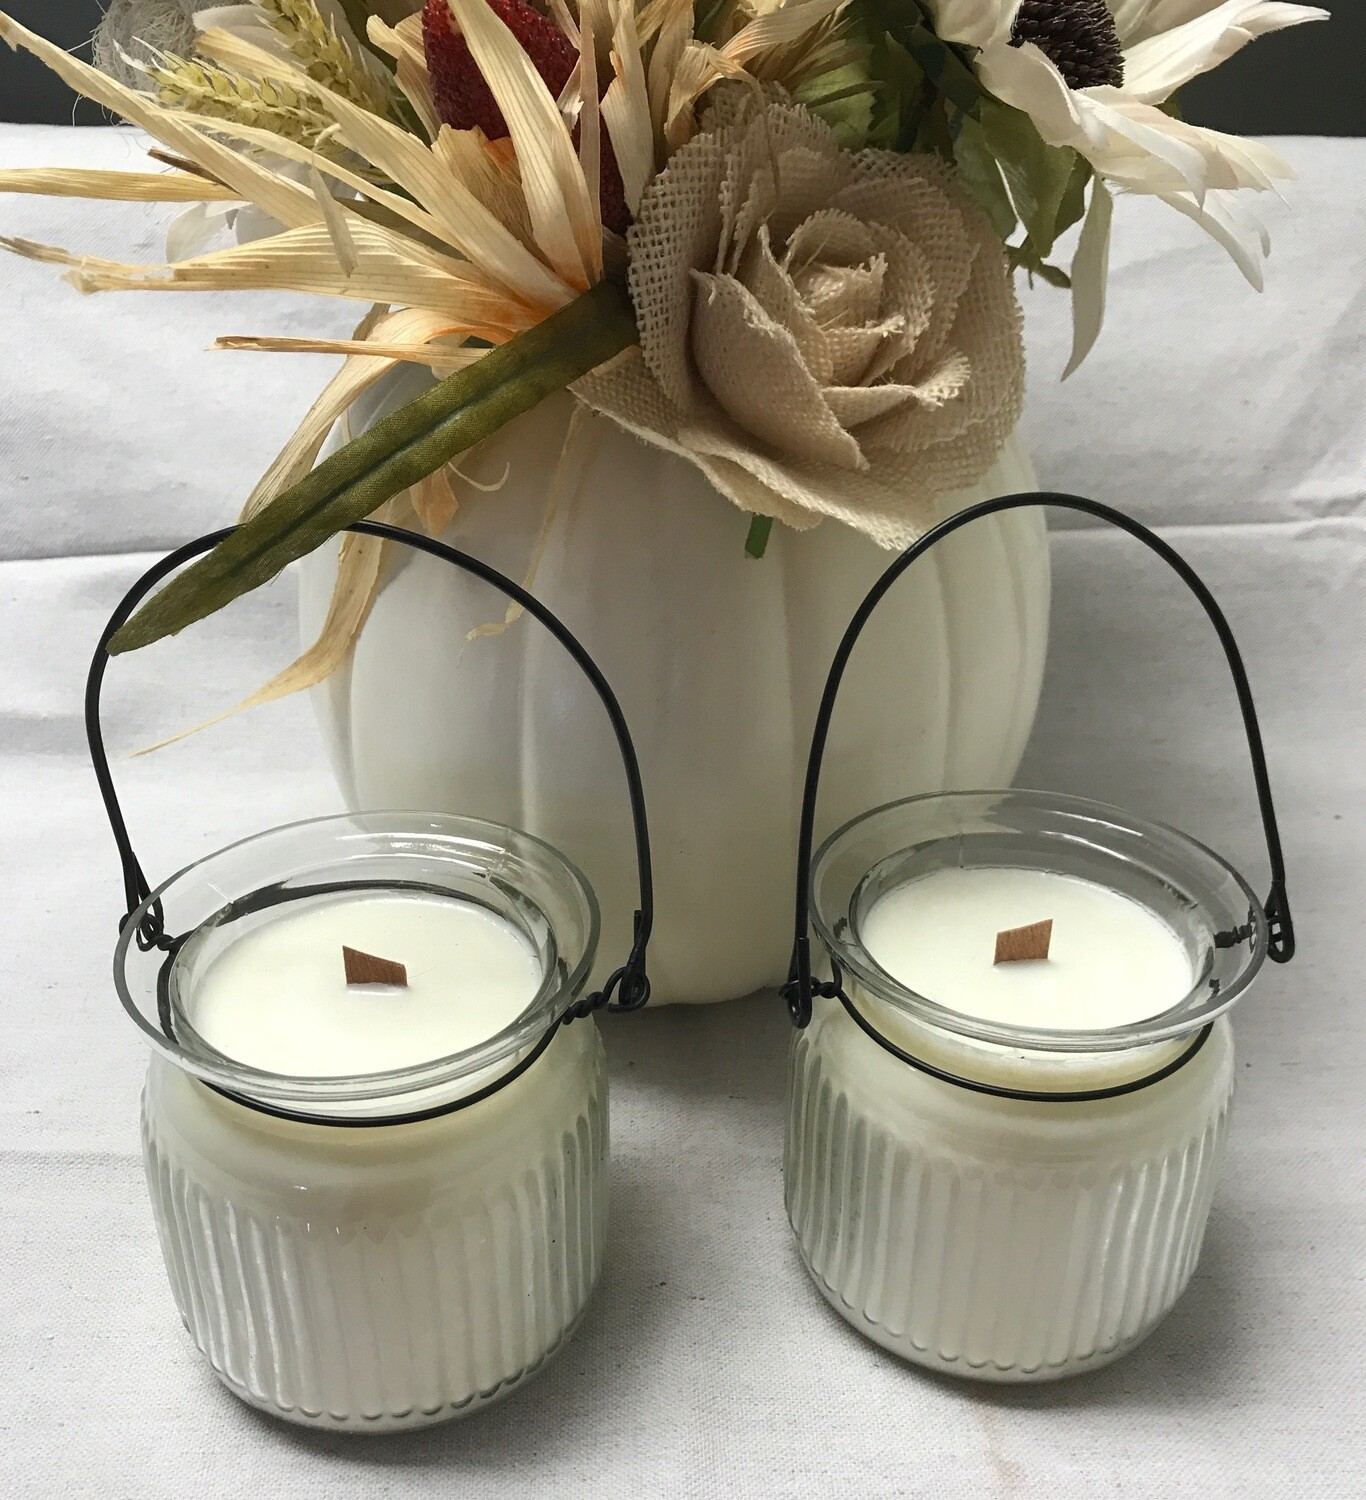 Orange Blossom Soy Blend Candles in Glass Containers